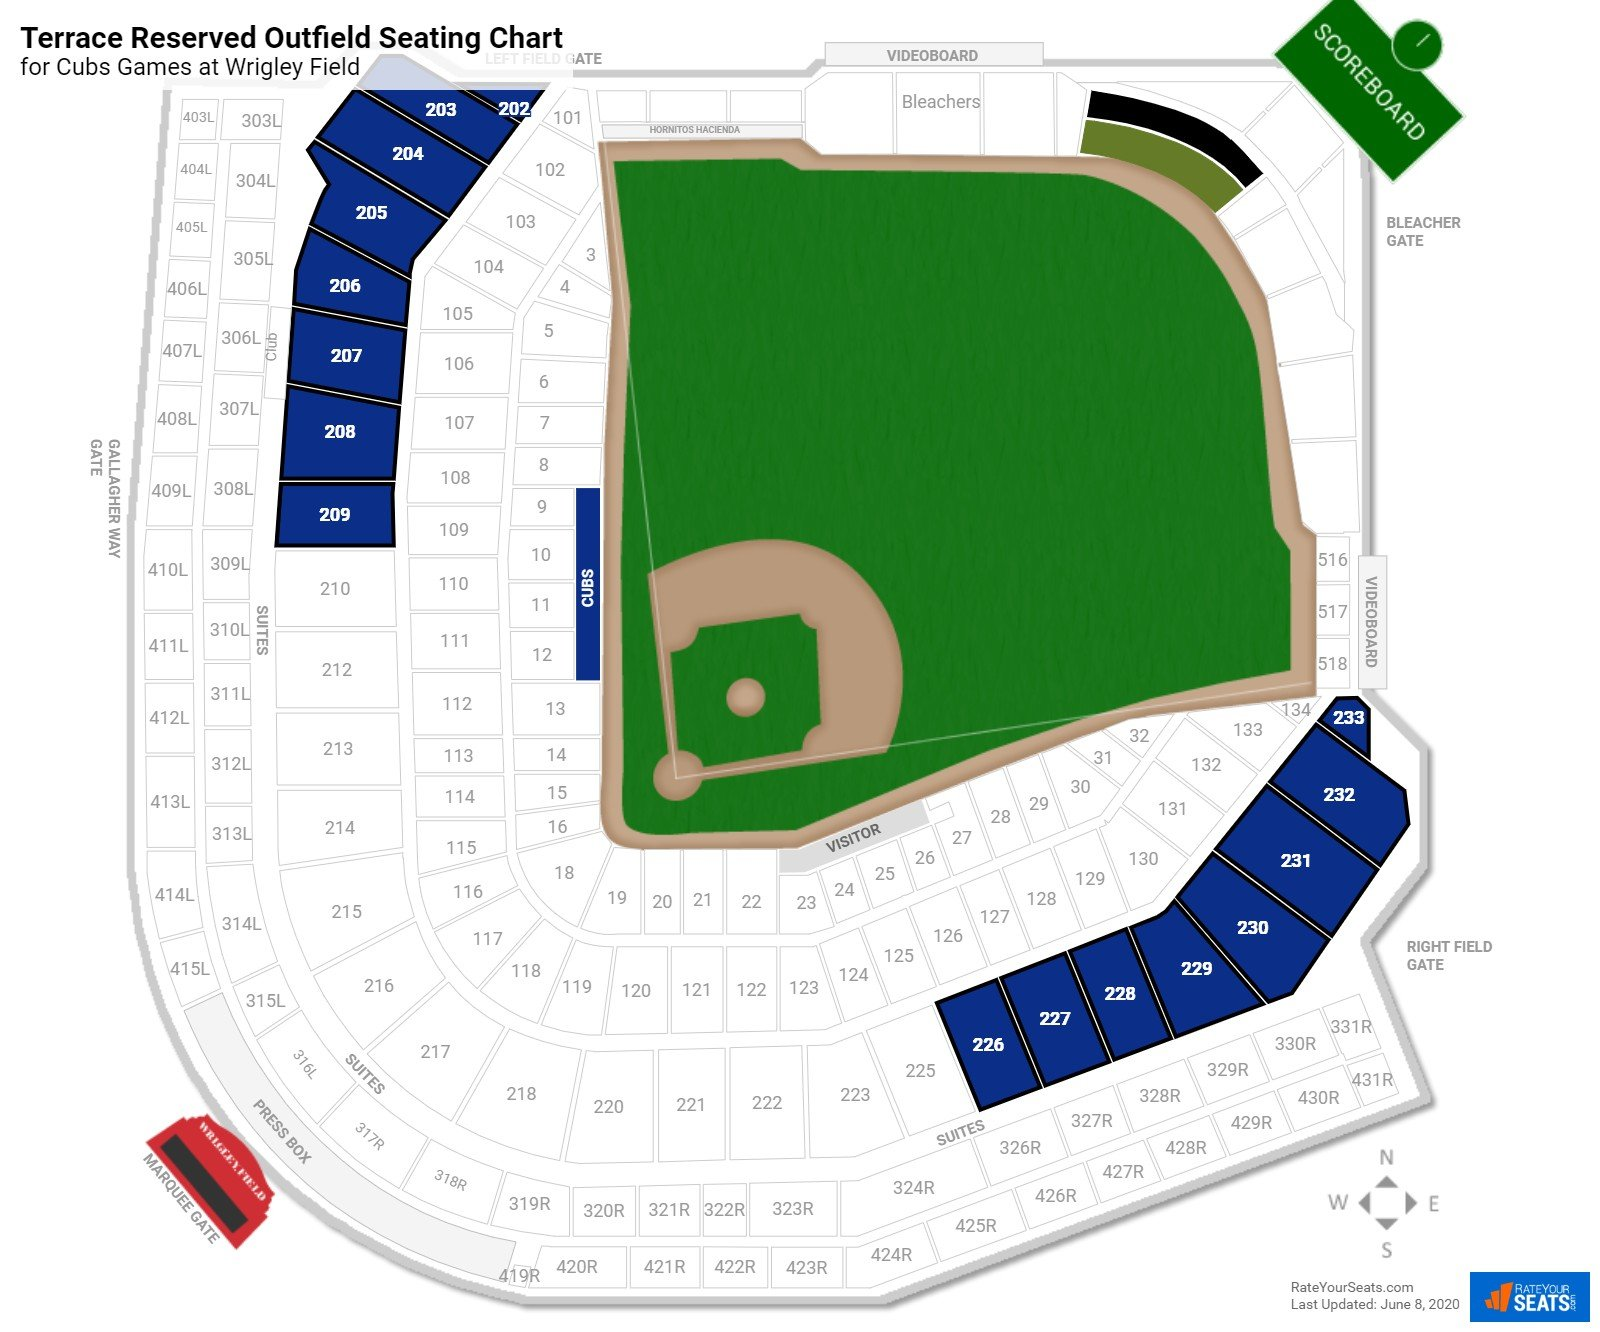 Wrigley Field Terrace Level Outfield seating chart